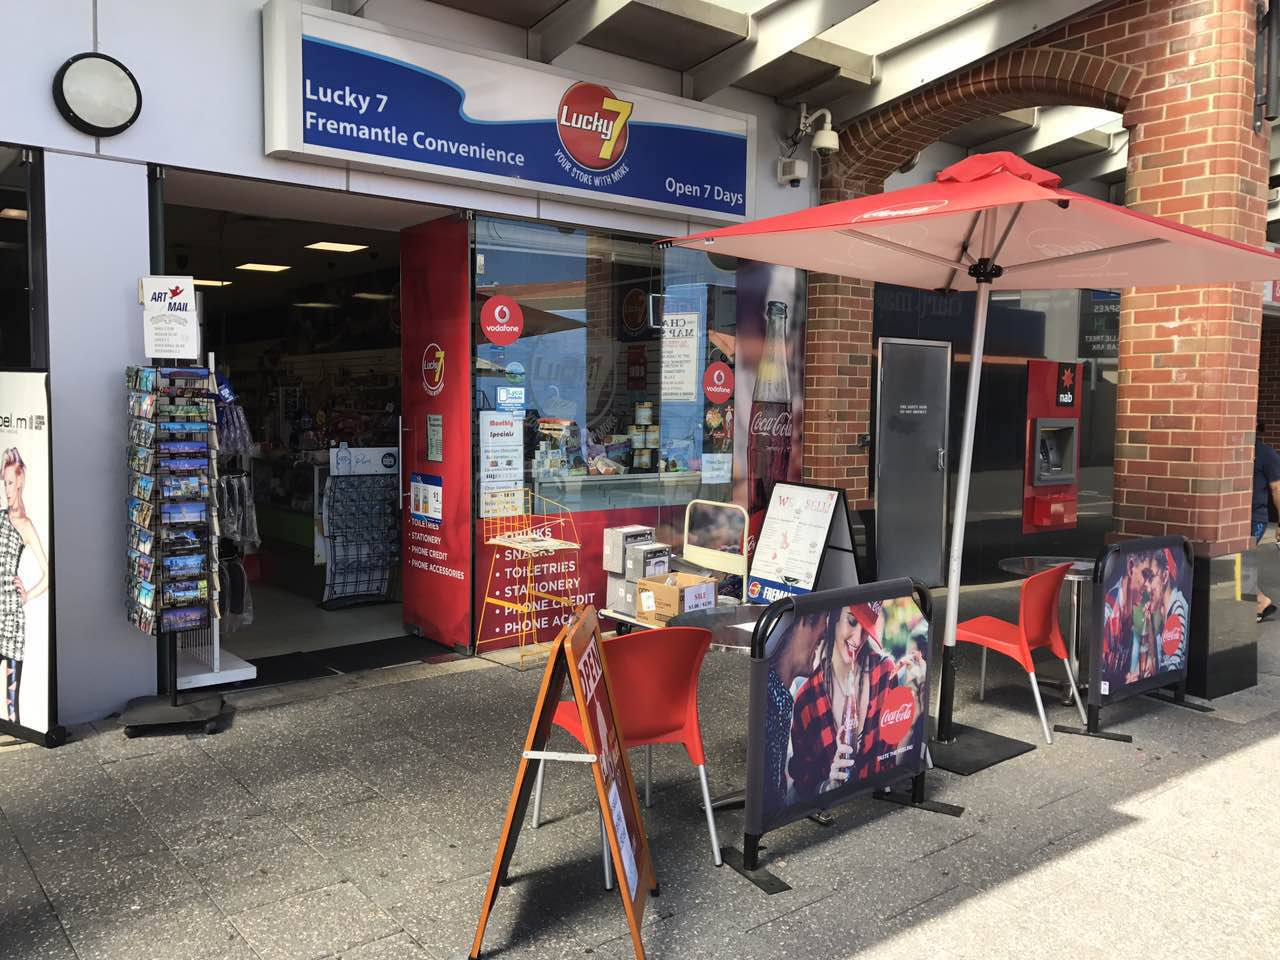 Convenience store in Fremantle, get your money back in a year